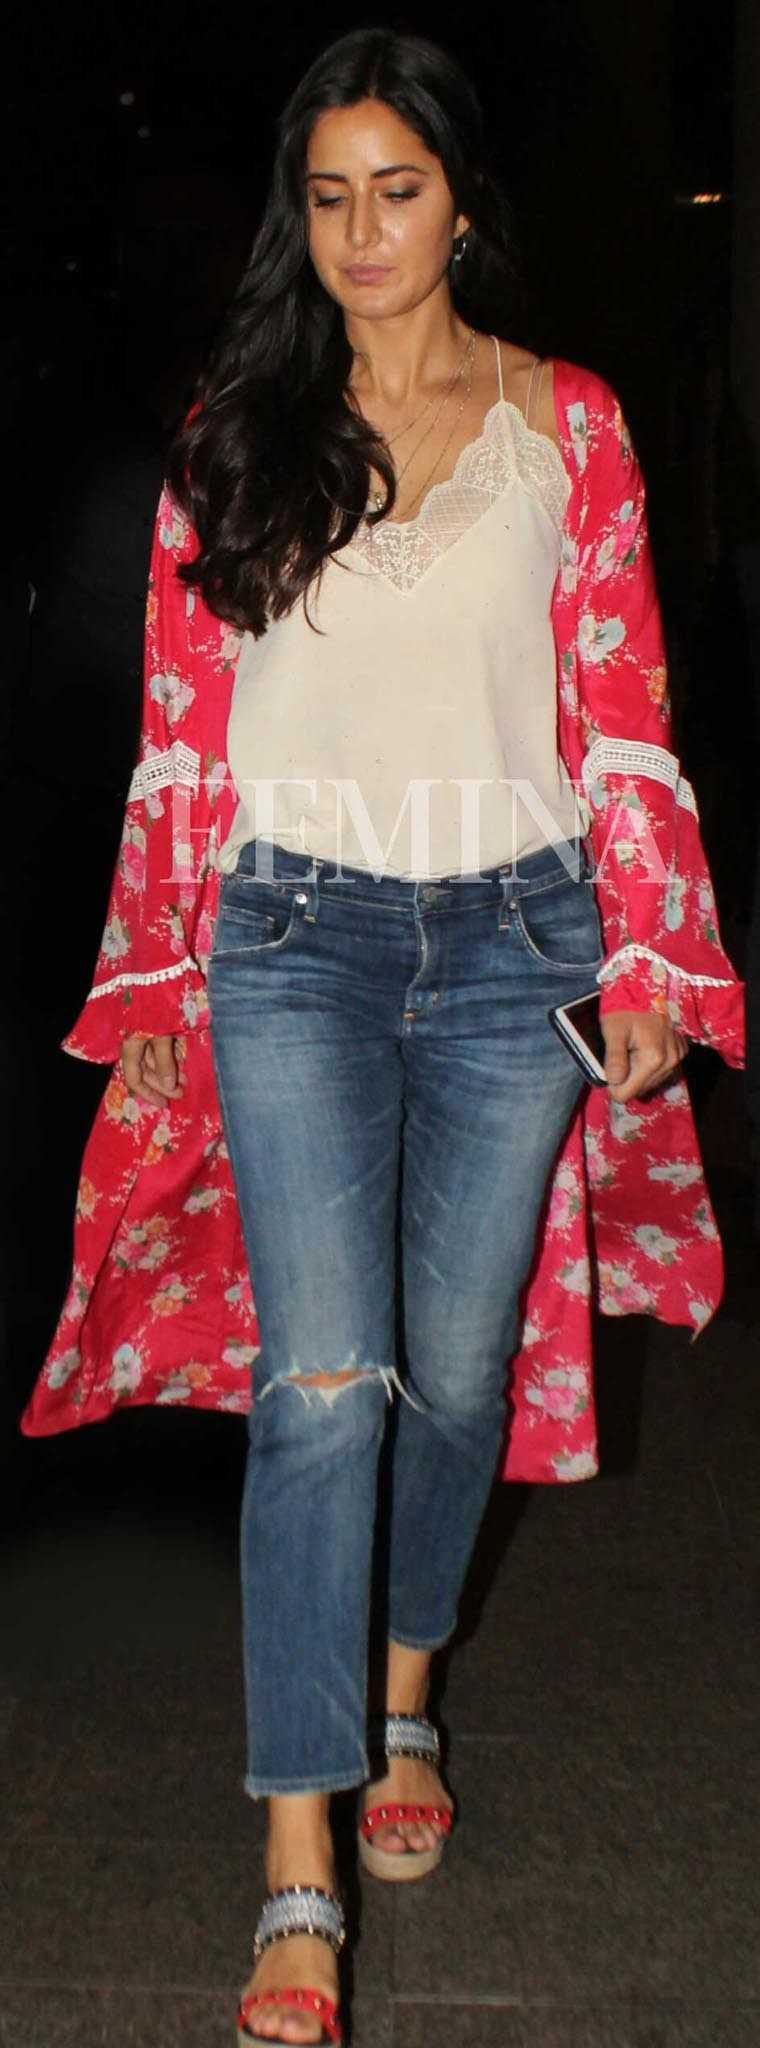 Katrina Kaif floral cover-up with a lace cami